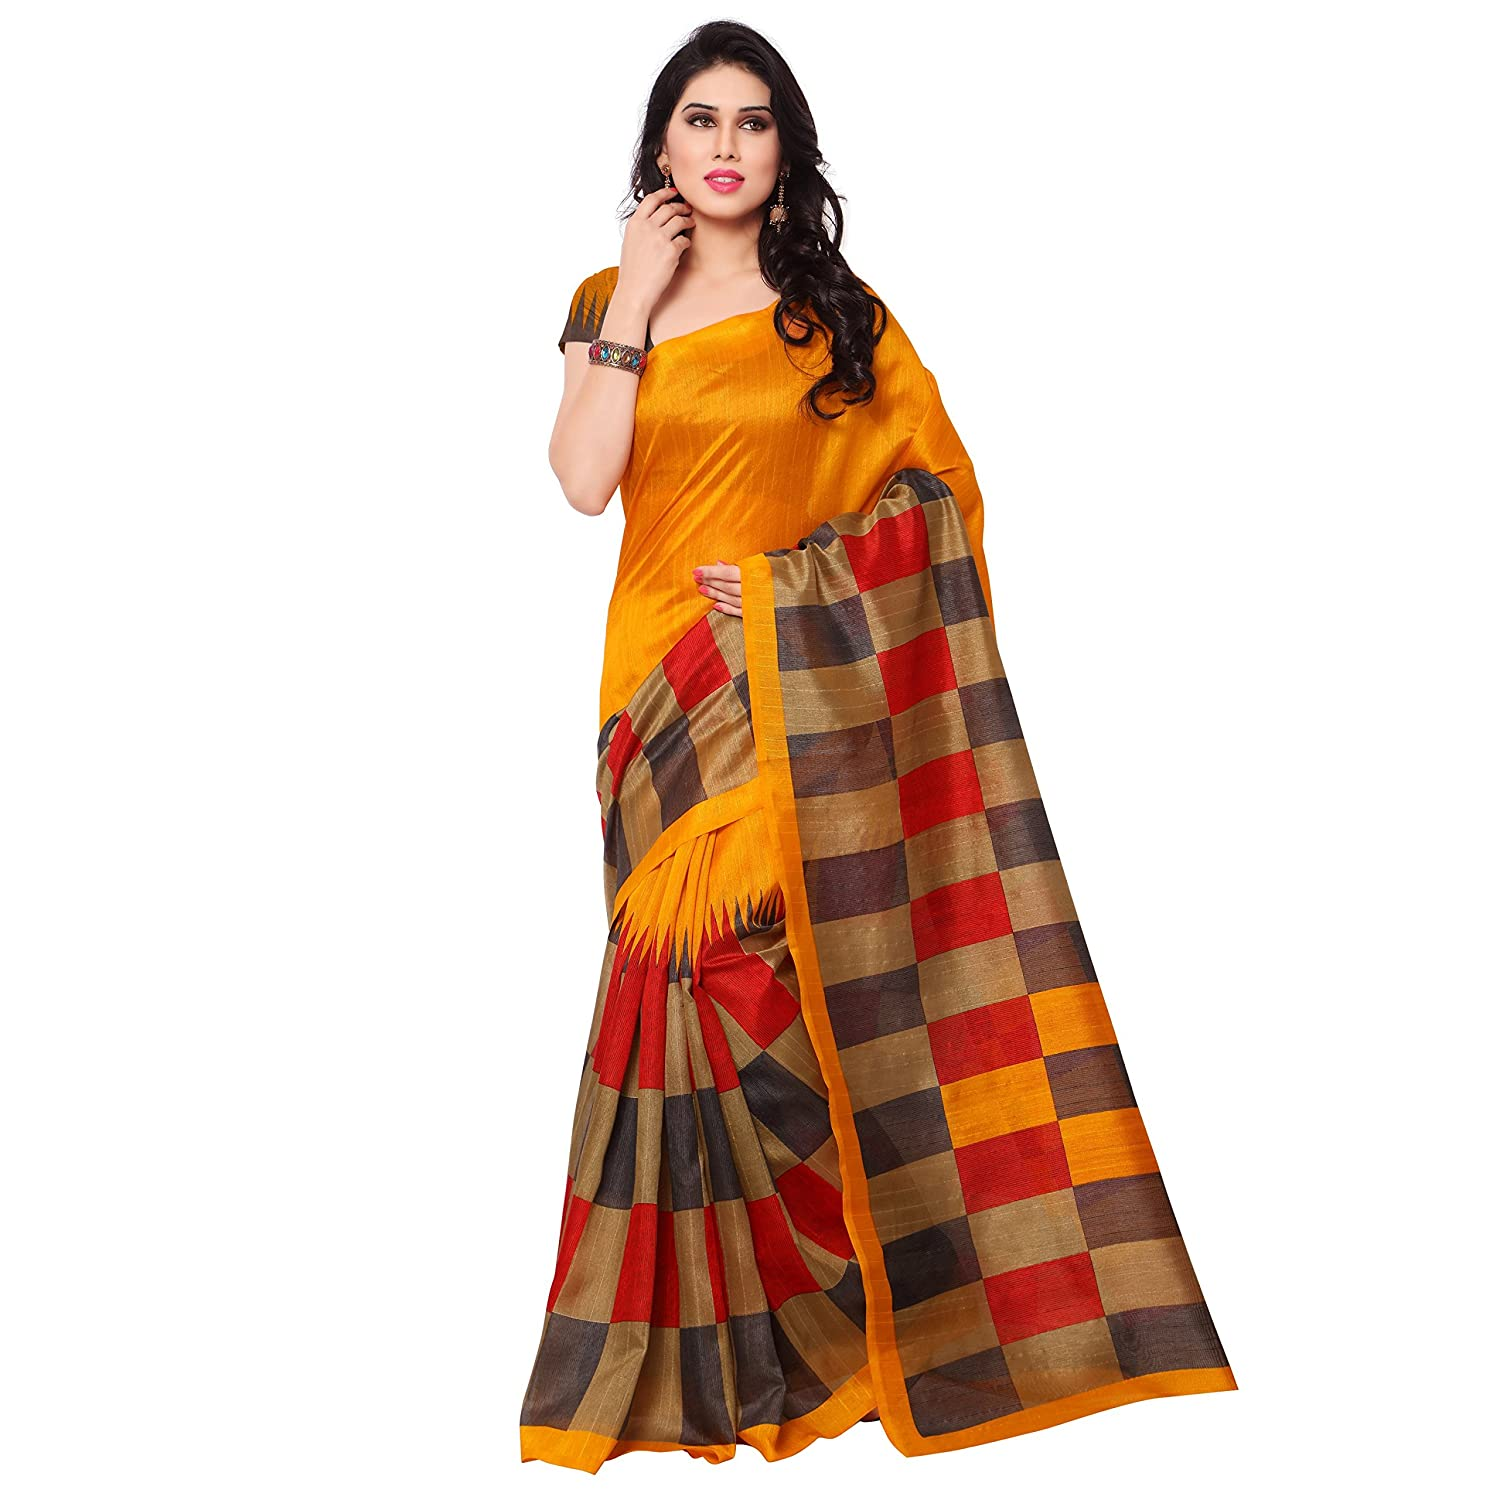 Samskruti Sarees Women's Checkerd Print Art Silk Saree